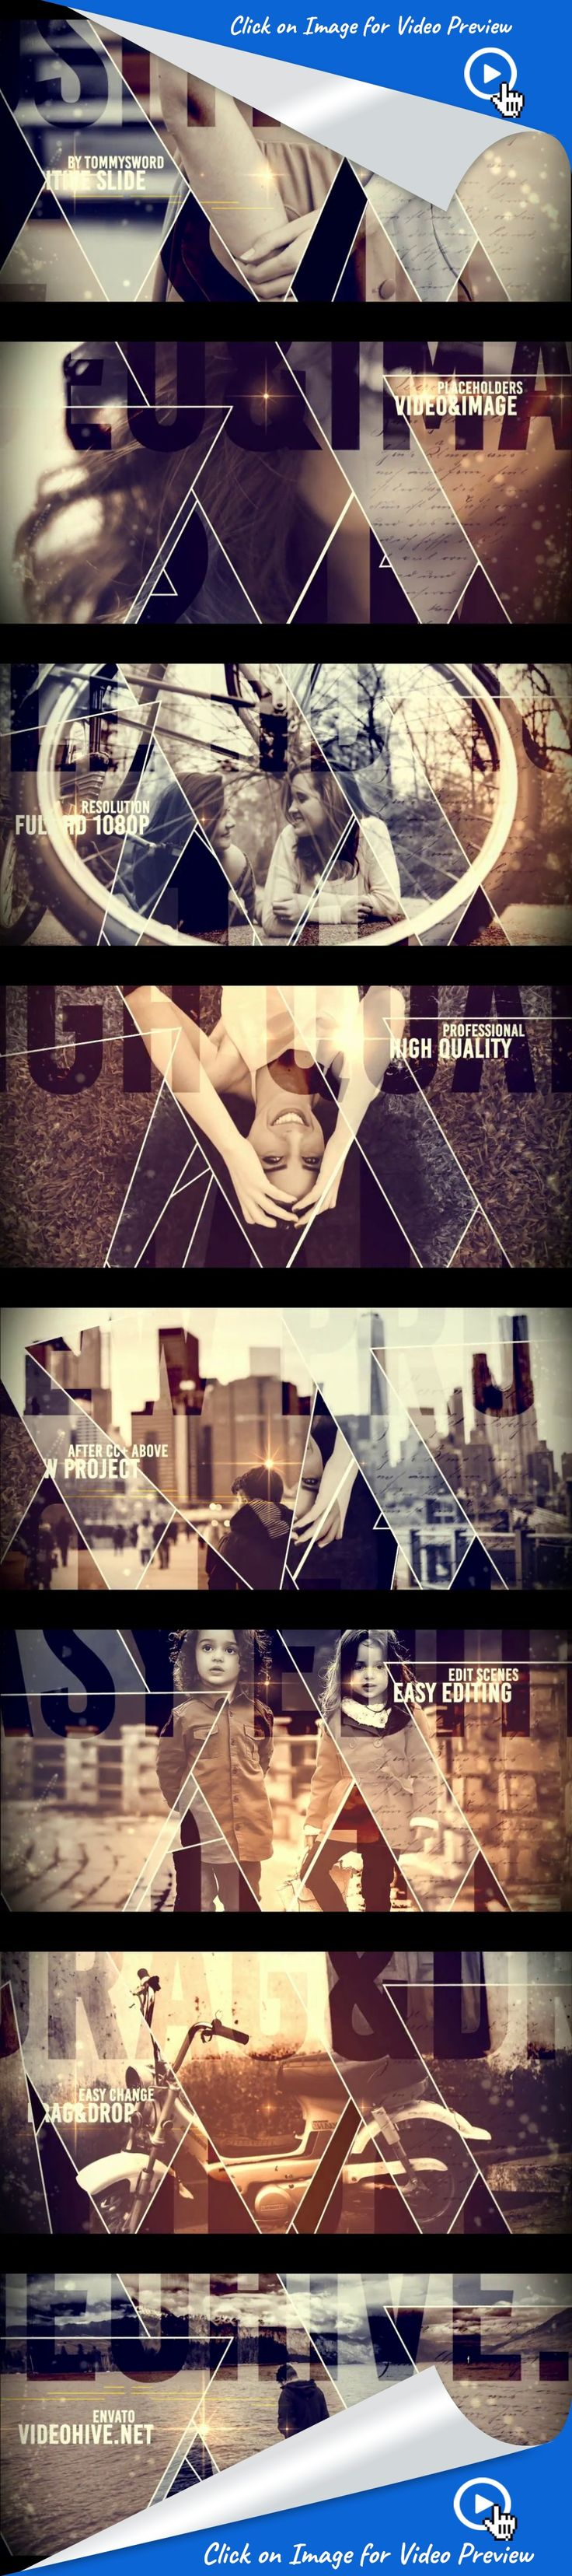 clean, dynamic, gallery, happy, journey, minimalistic, photo, slideshow, special event, trailer, travel, video display, after effects templates, after effects ideas, after effects intro, after effects intro, after effects motion graphics, intro ideas youtube, after effects projects, videohive projects - No plugin   - All made in After Effects   - Editable with After Effects  CC – CC 2014 – CC 2015   - 1920×1080 Full HD resolution   - Works with any frame rate   - 22 Placeholders f...